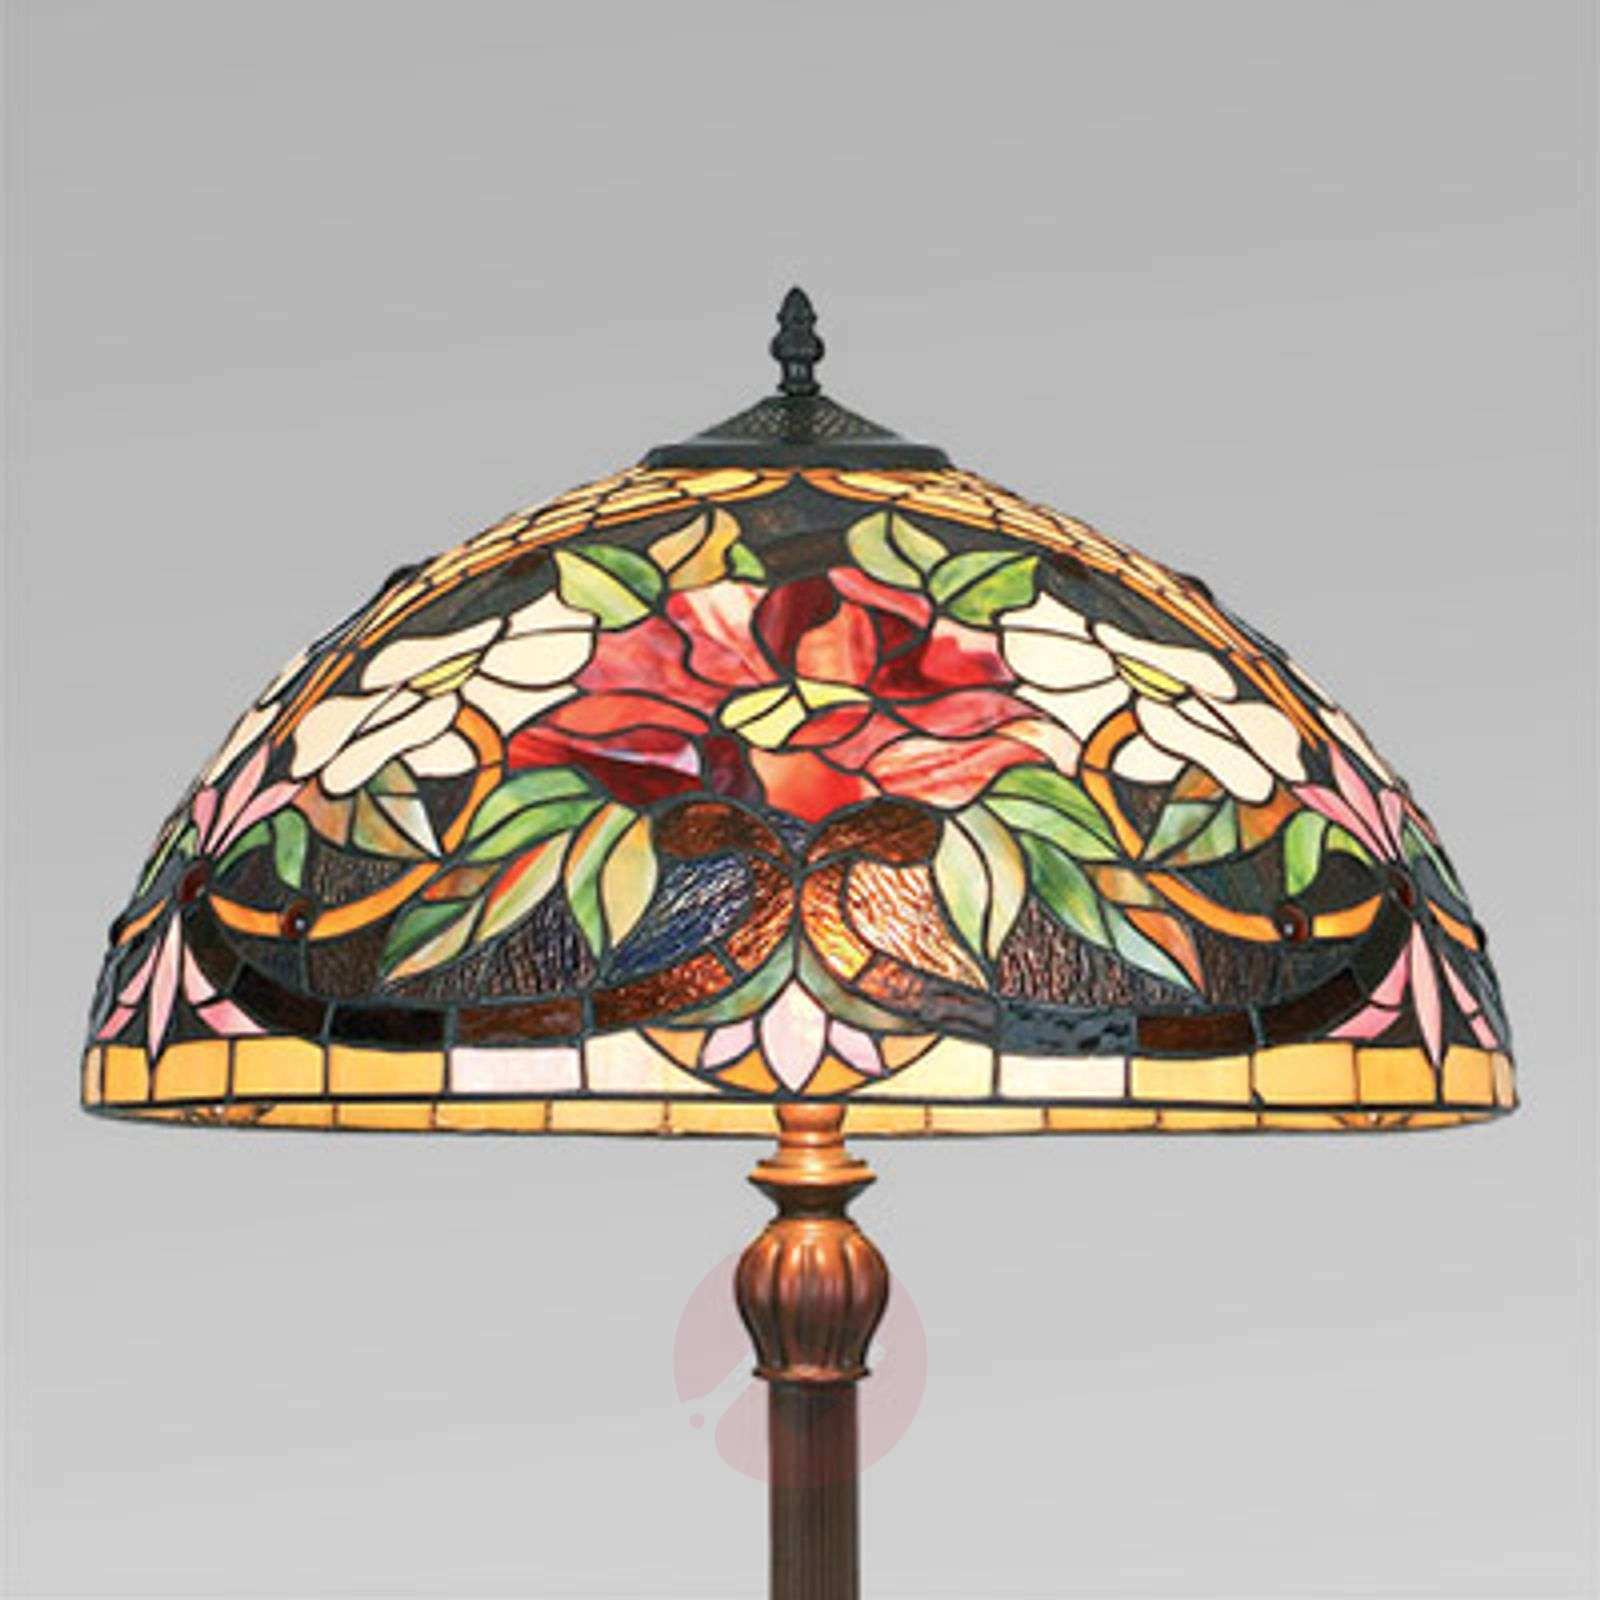 Colourful floor lamp ARIADNE in the Tiffany style-1032147-02